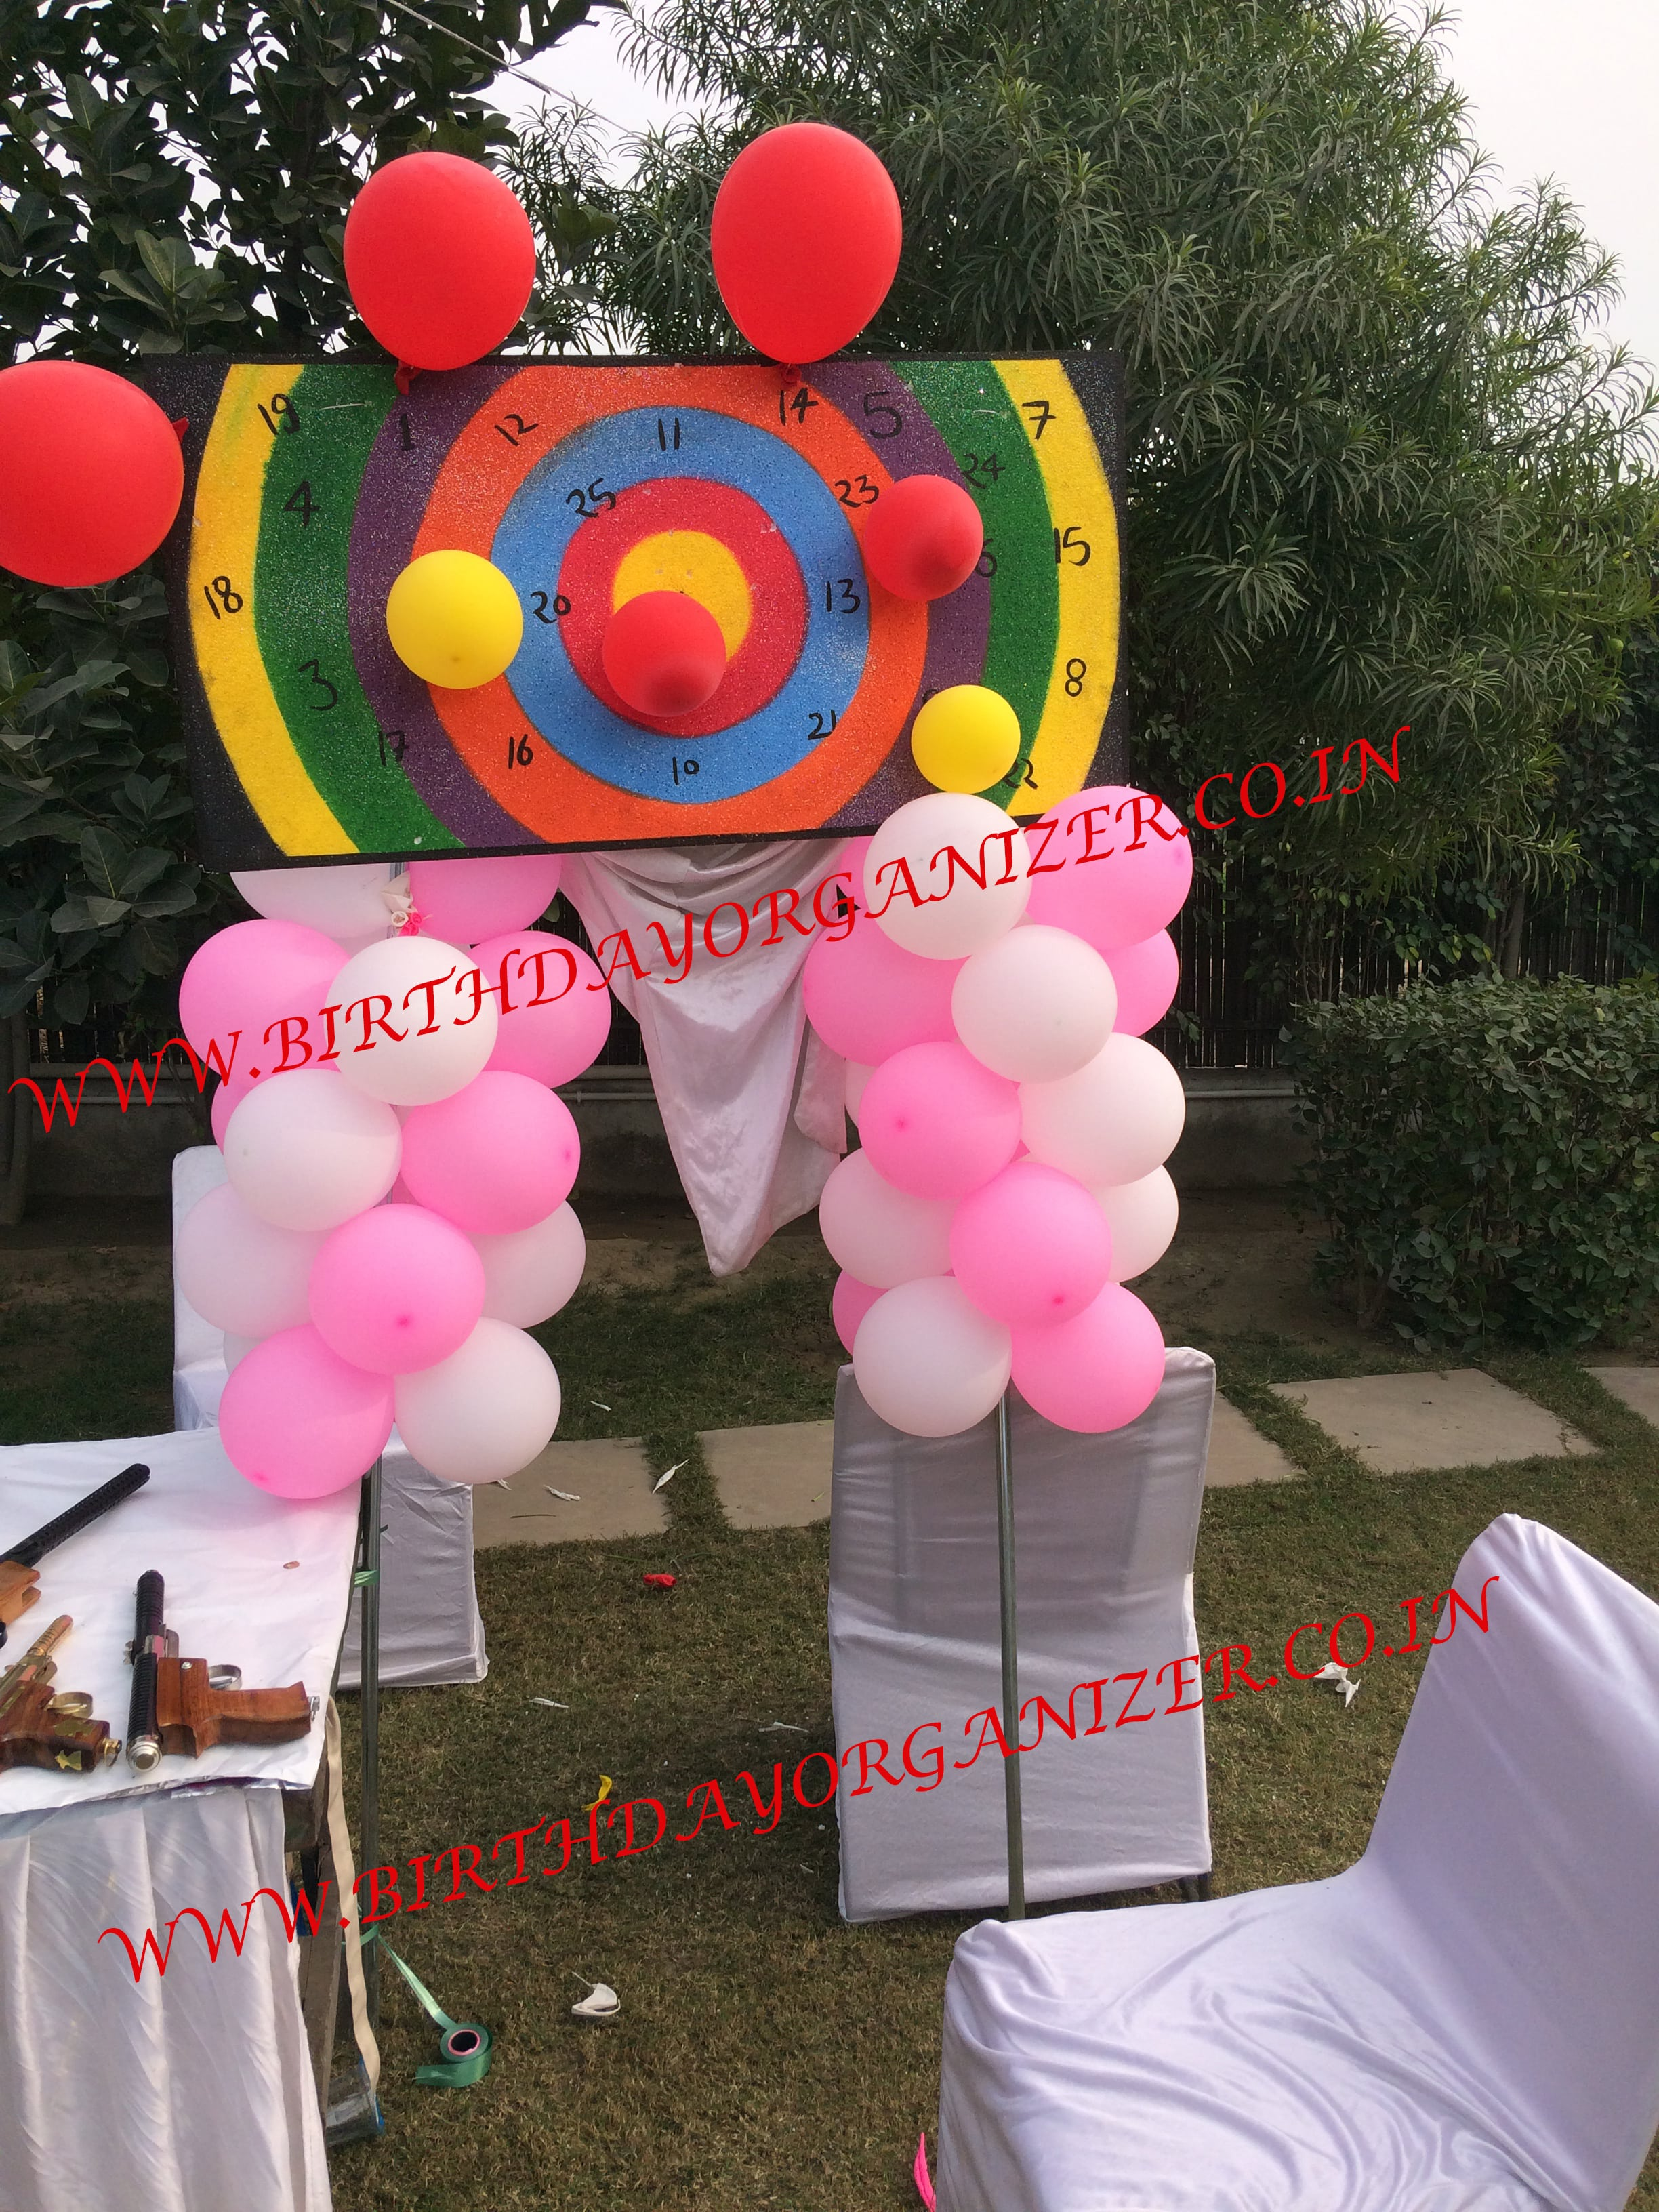 balloon decoration for birthday party in noida, balloon decoration for birthday party in delhi ncr, gurgaon, balloon decoration for birthday party near me, birthday party balloon decoration in noida , birthday party balloon planner in noida delhi ncr, birthday party balloon decorator in noida delhi ncr